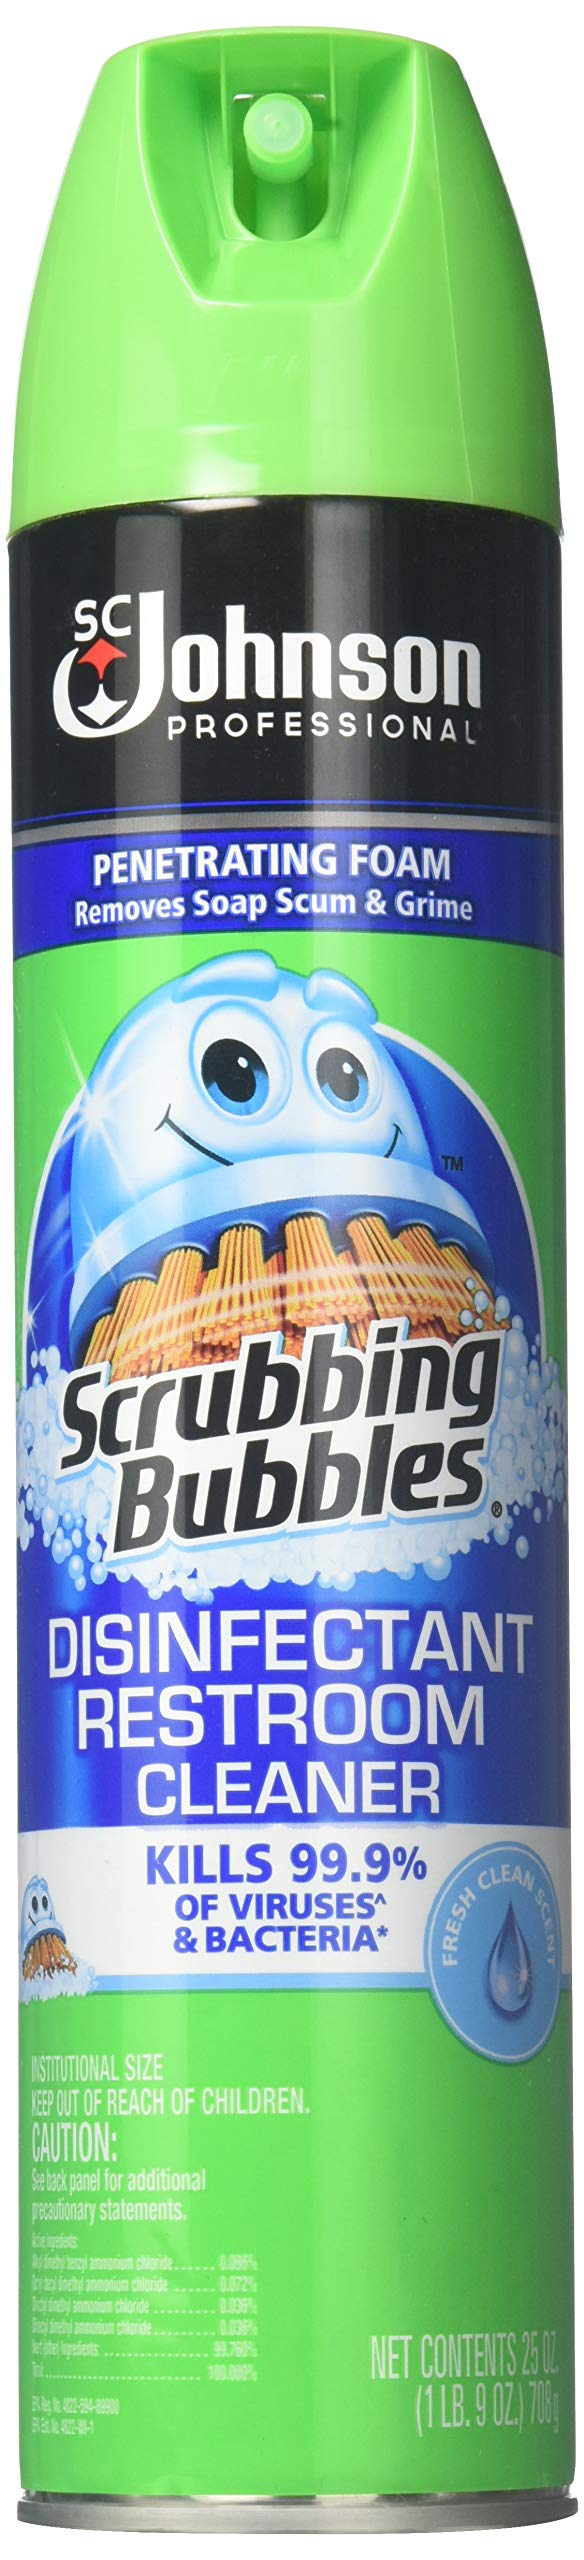 Scrubbing Bubbles Sc Johnson Professional Scrubbing Bubbles Disinfectant Restroom Cleaner, 25 Ounce each (Pack of 12)